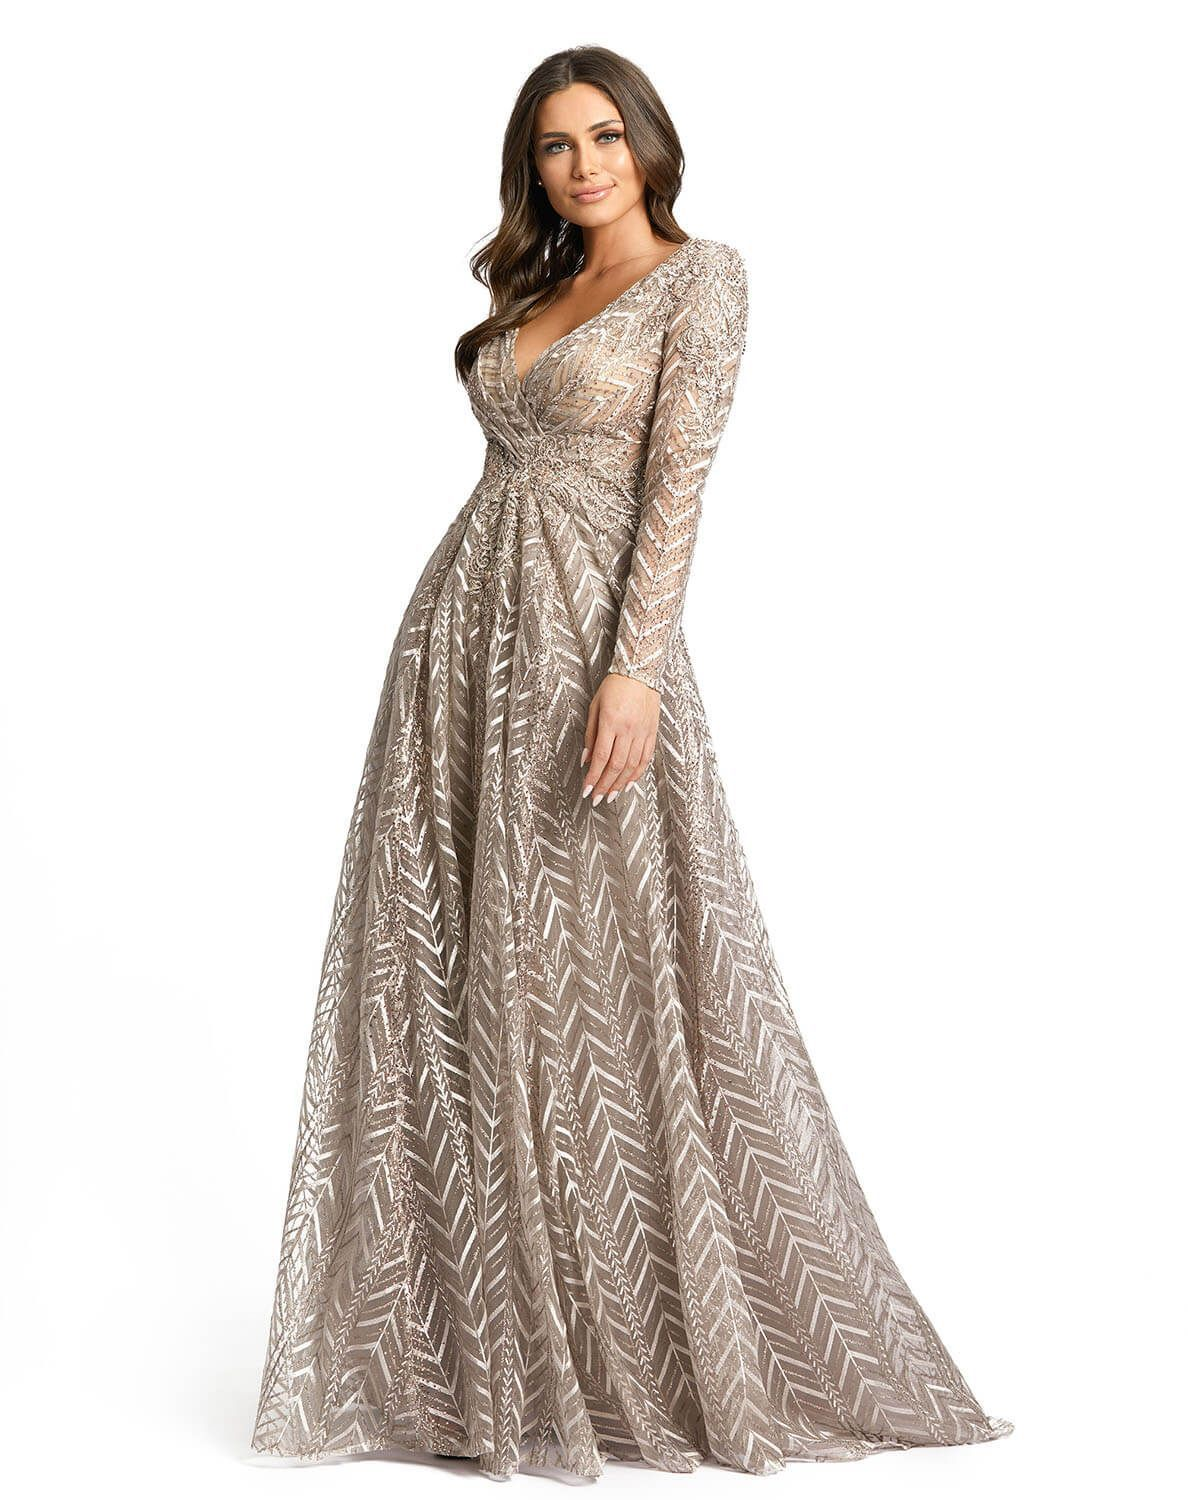 https://www.bridalreflections.com/wp-content/uploads/2021/04/20189D-Taupe-AB.jpg